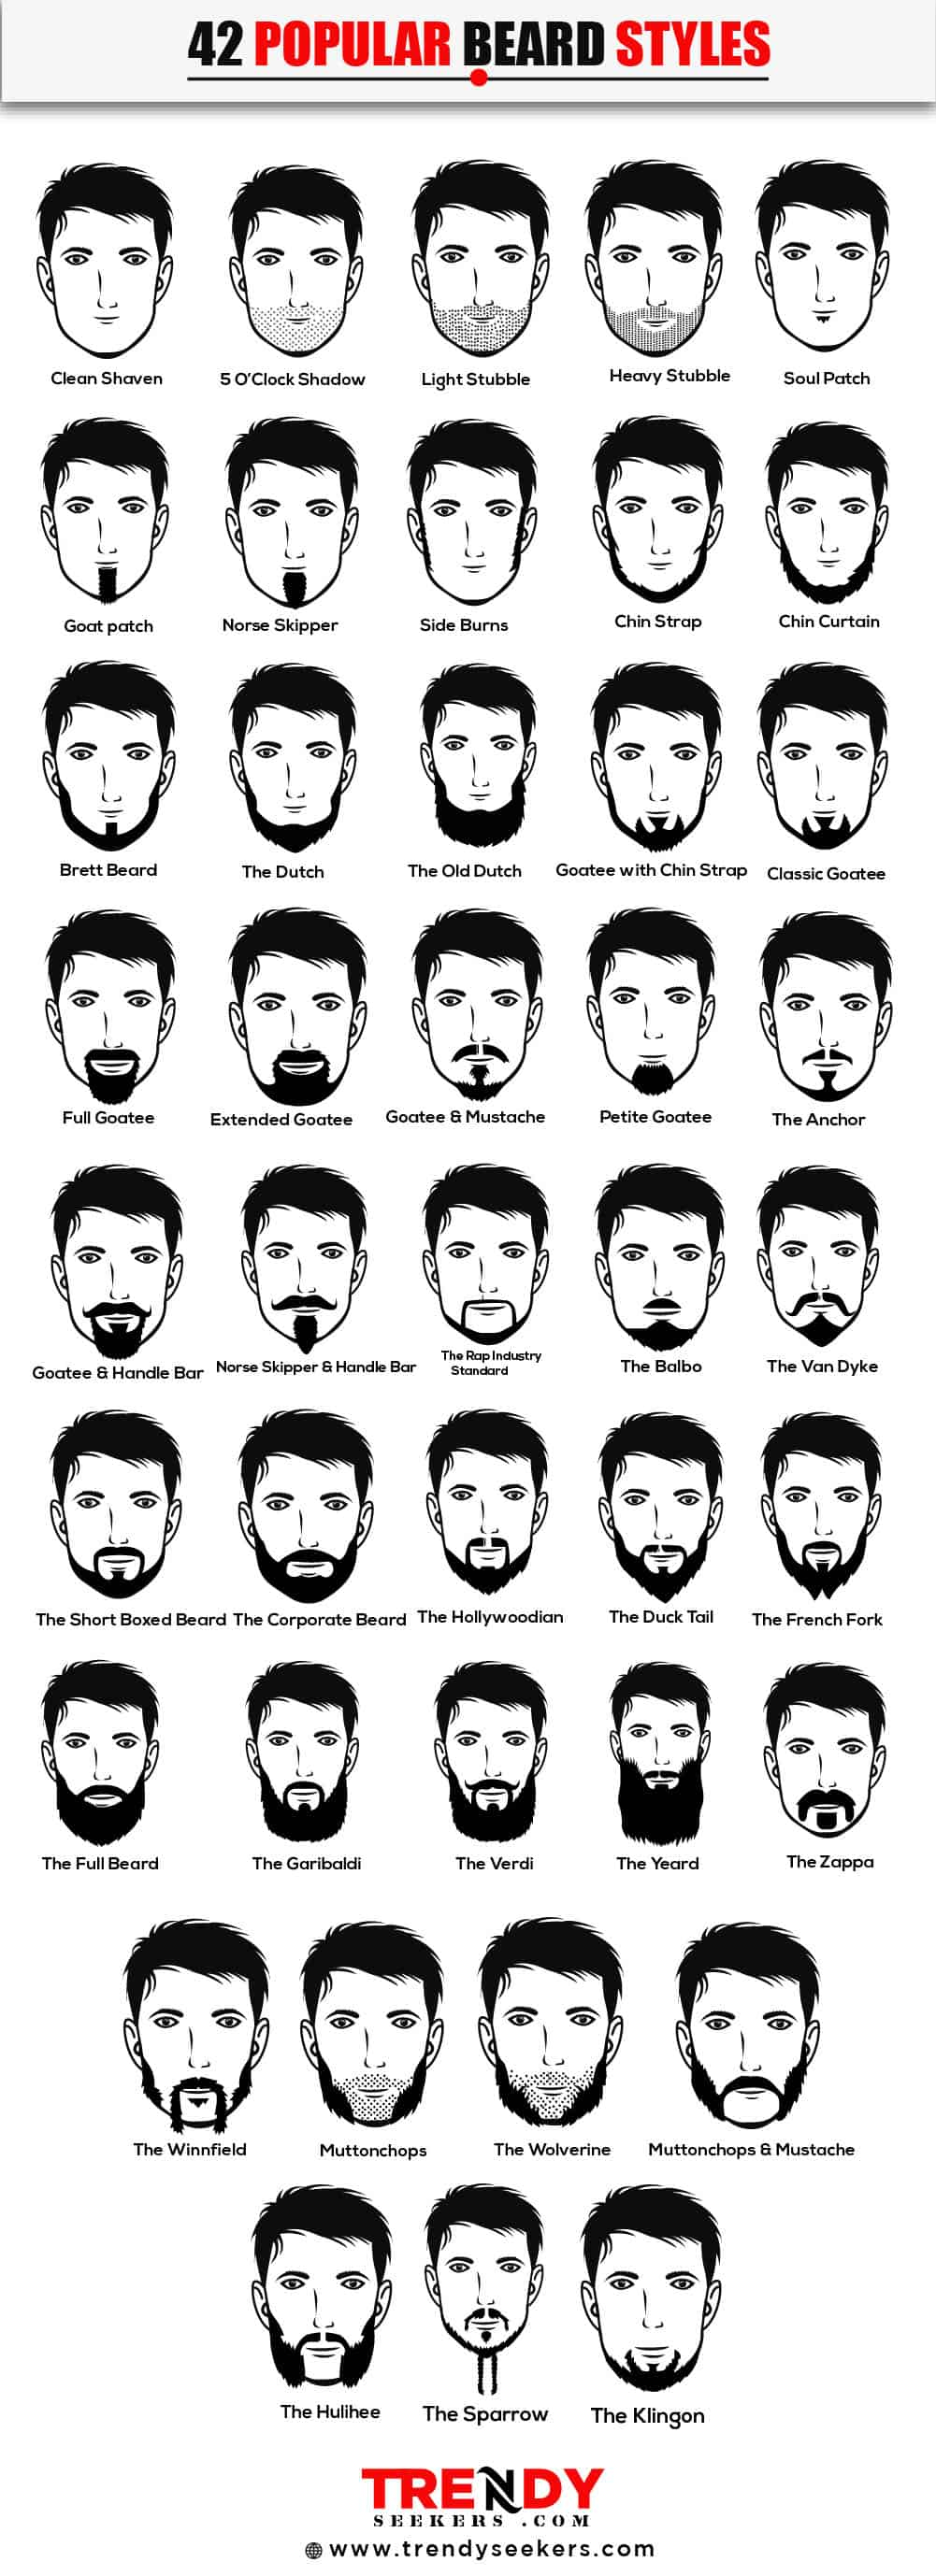 42 Popular Beard Style Infographic